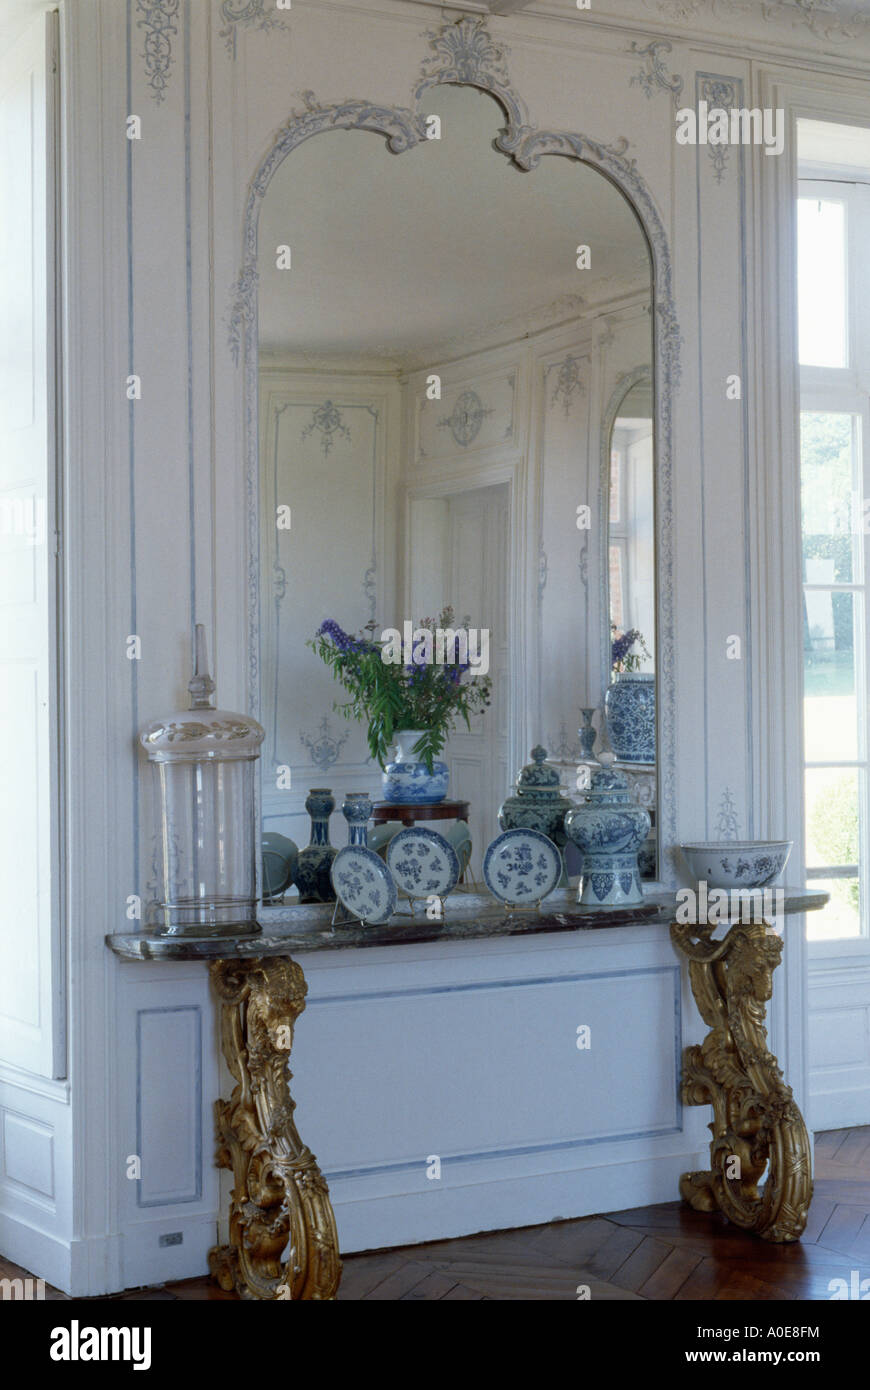 Large Mirror Above Antique Console Table In Traditional Hall In French  Townhouse